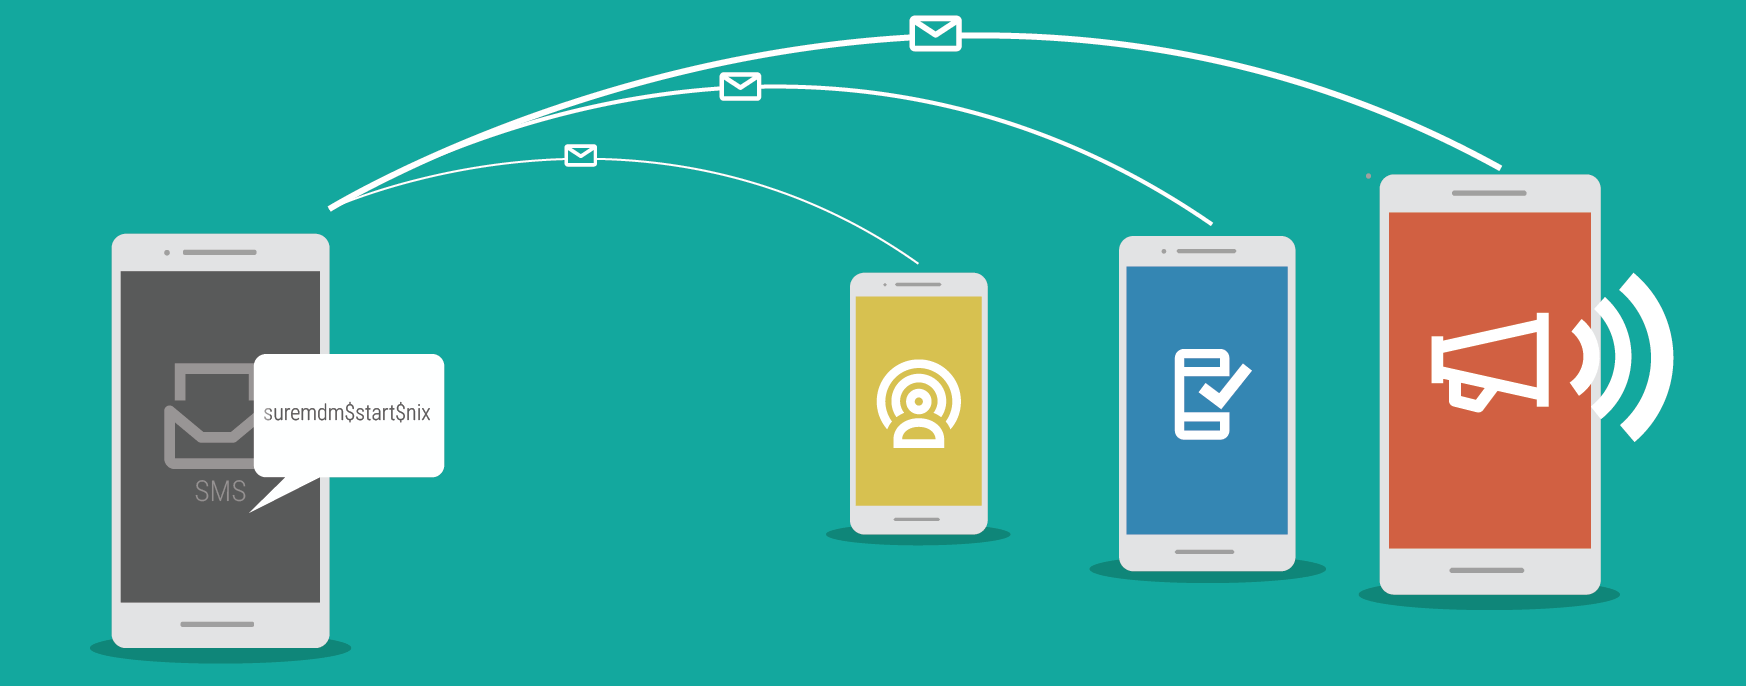 Simply spy on any device with its phone number